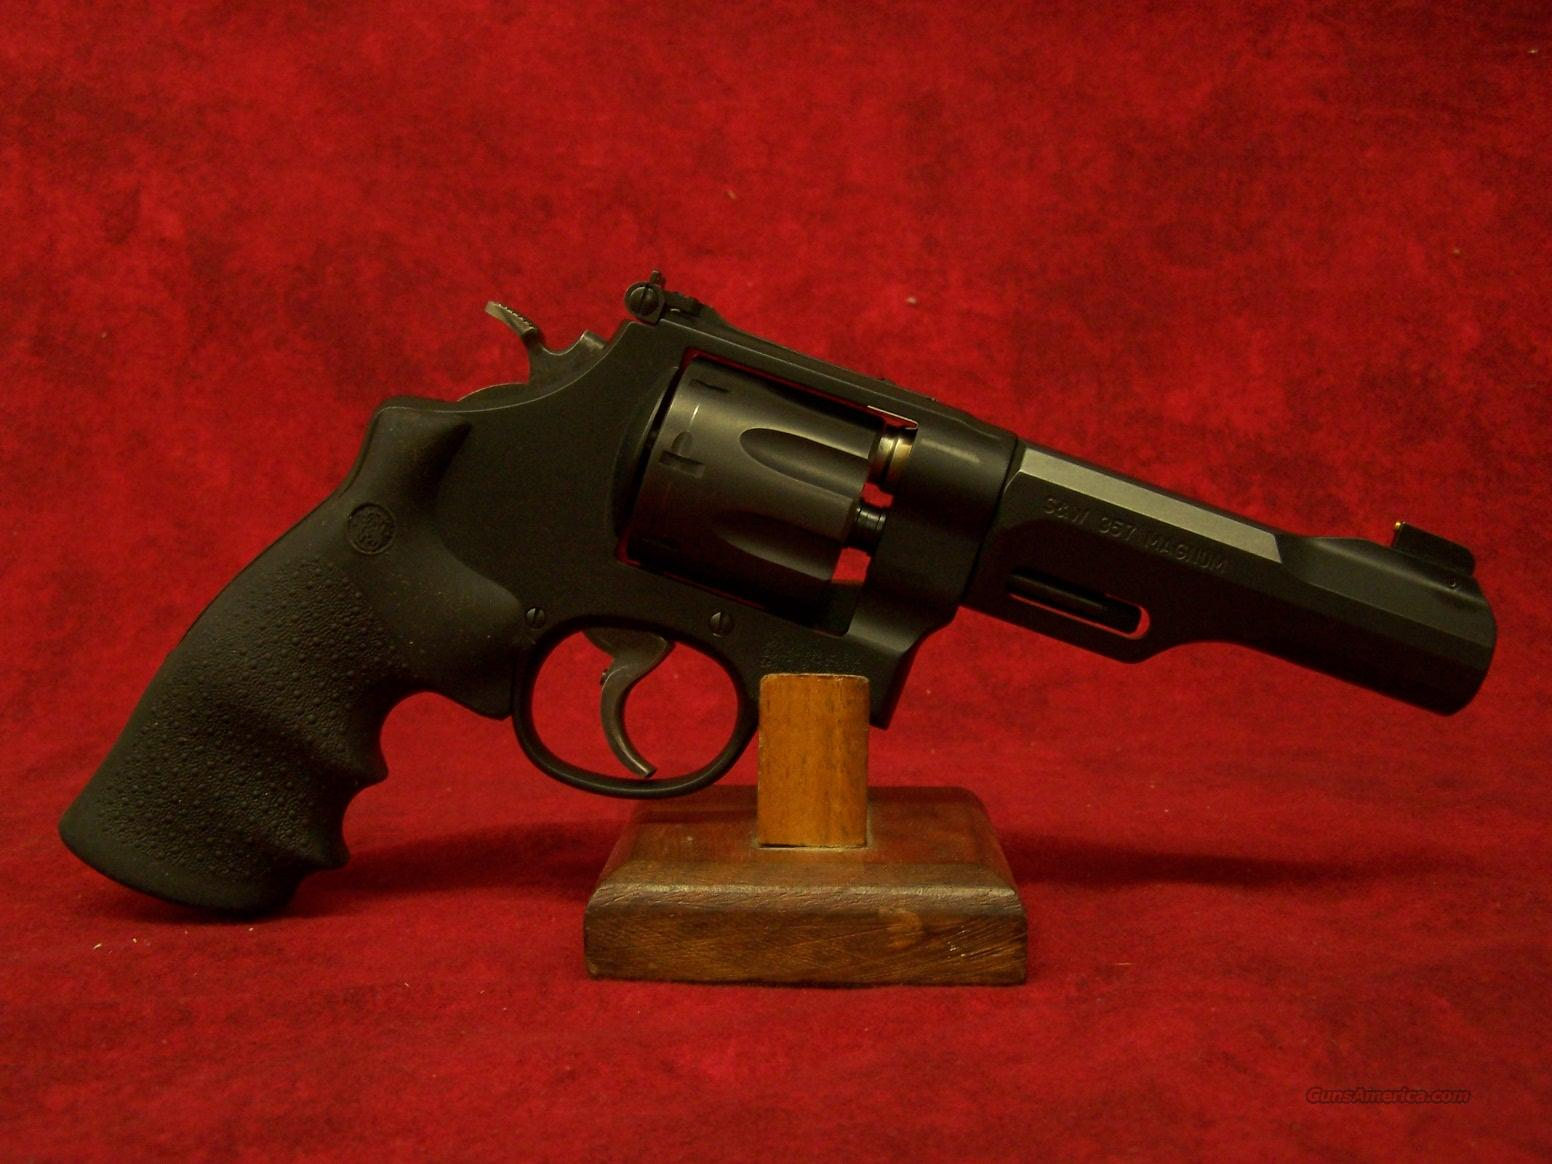 Smith & Wesson 327 TRR8 .357 mag  Guns > Pistols > Smith & Wesson Revolvers > Performance Center